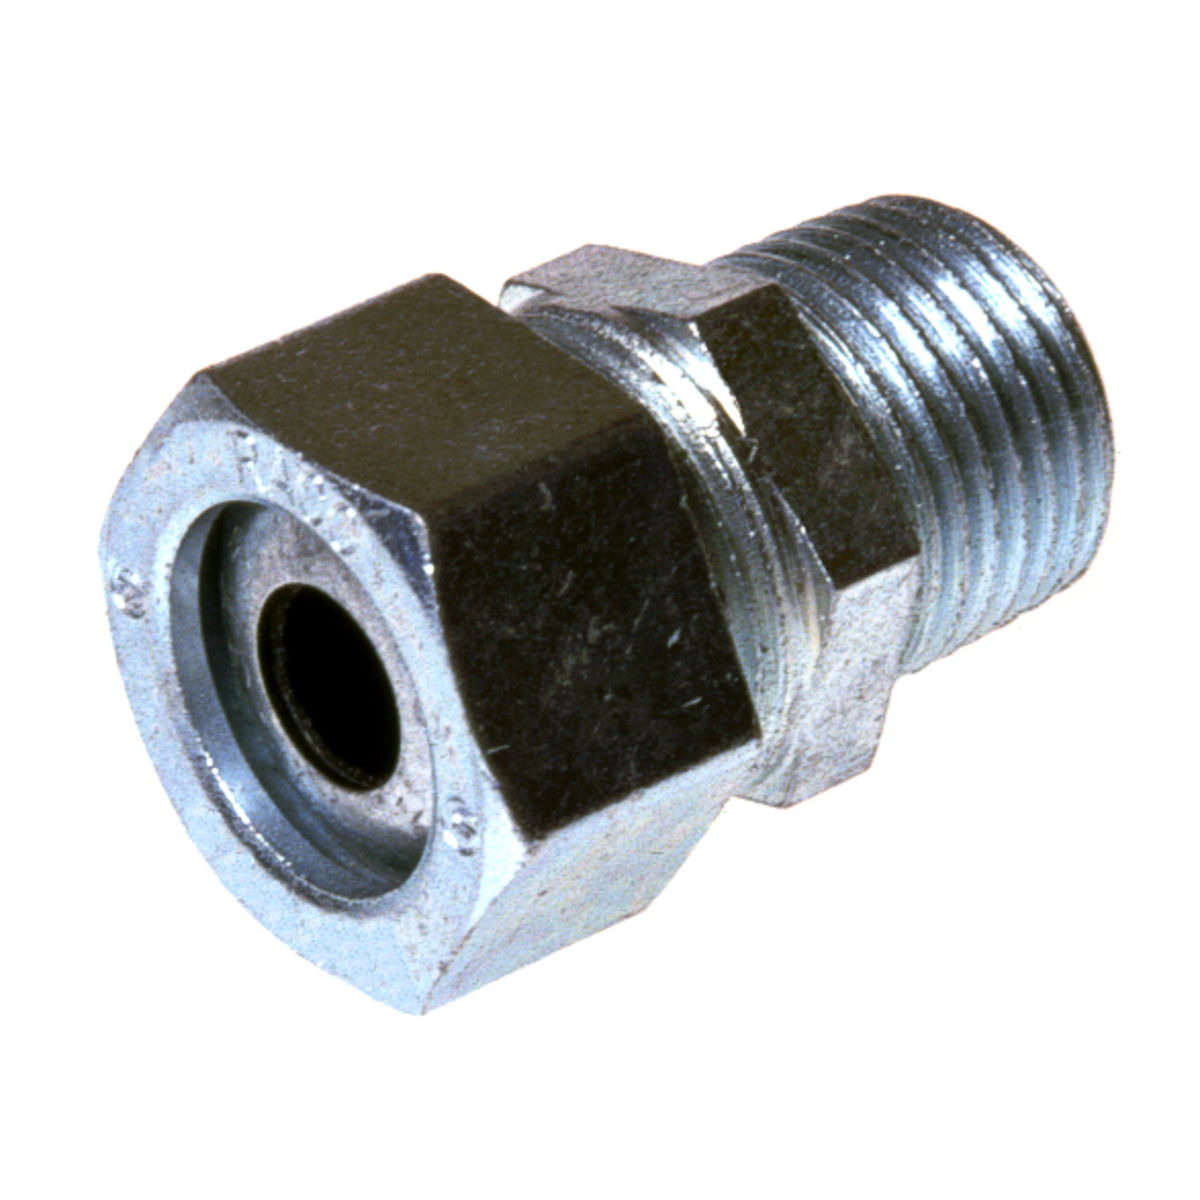 Hubbell-Raco 3705-1 Cord Connector